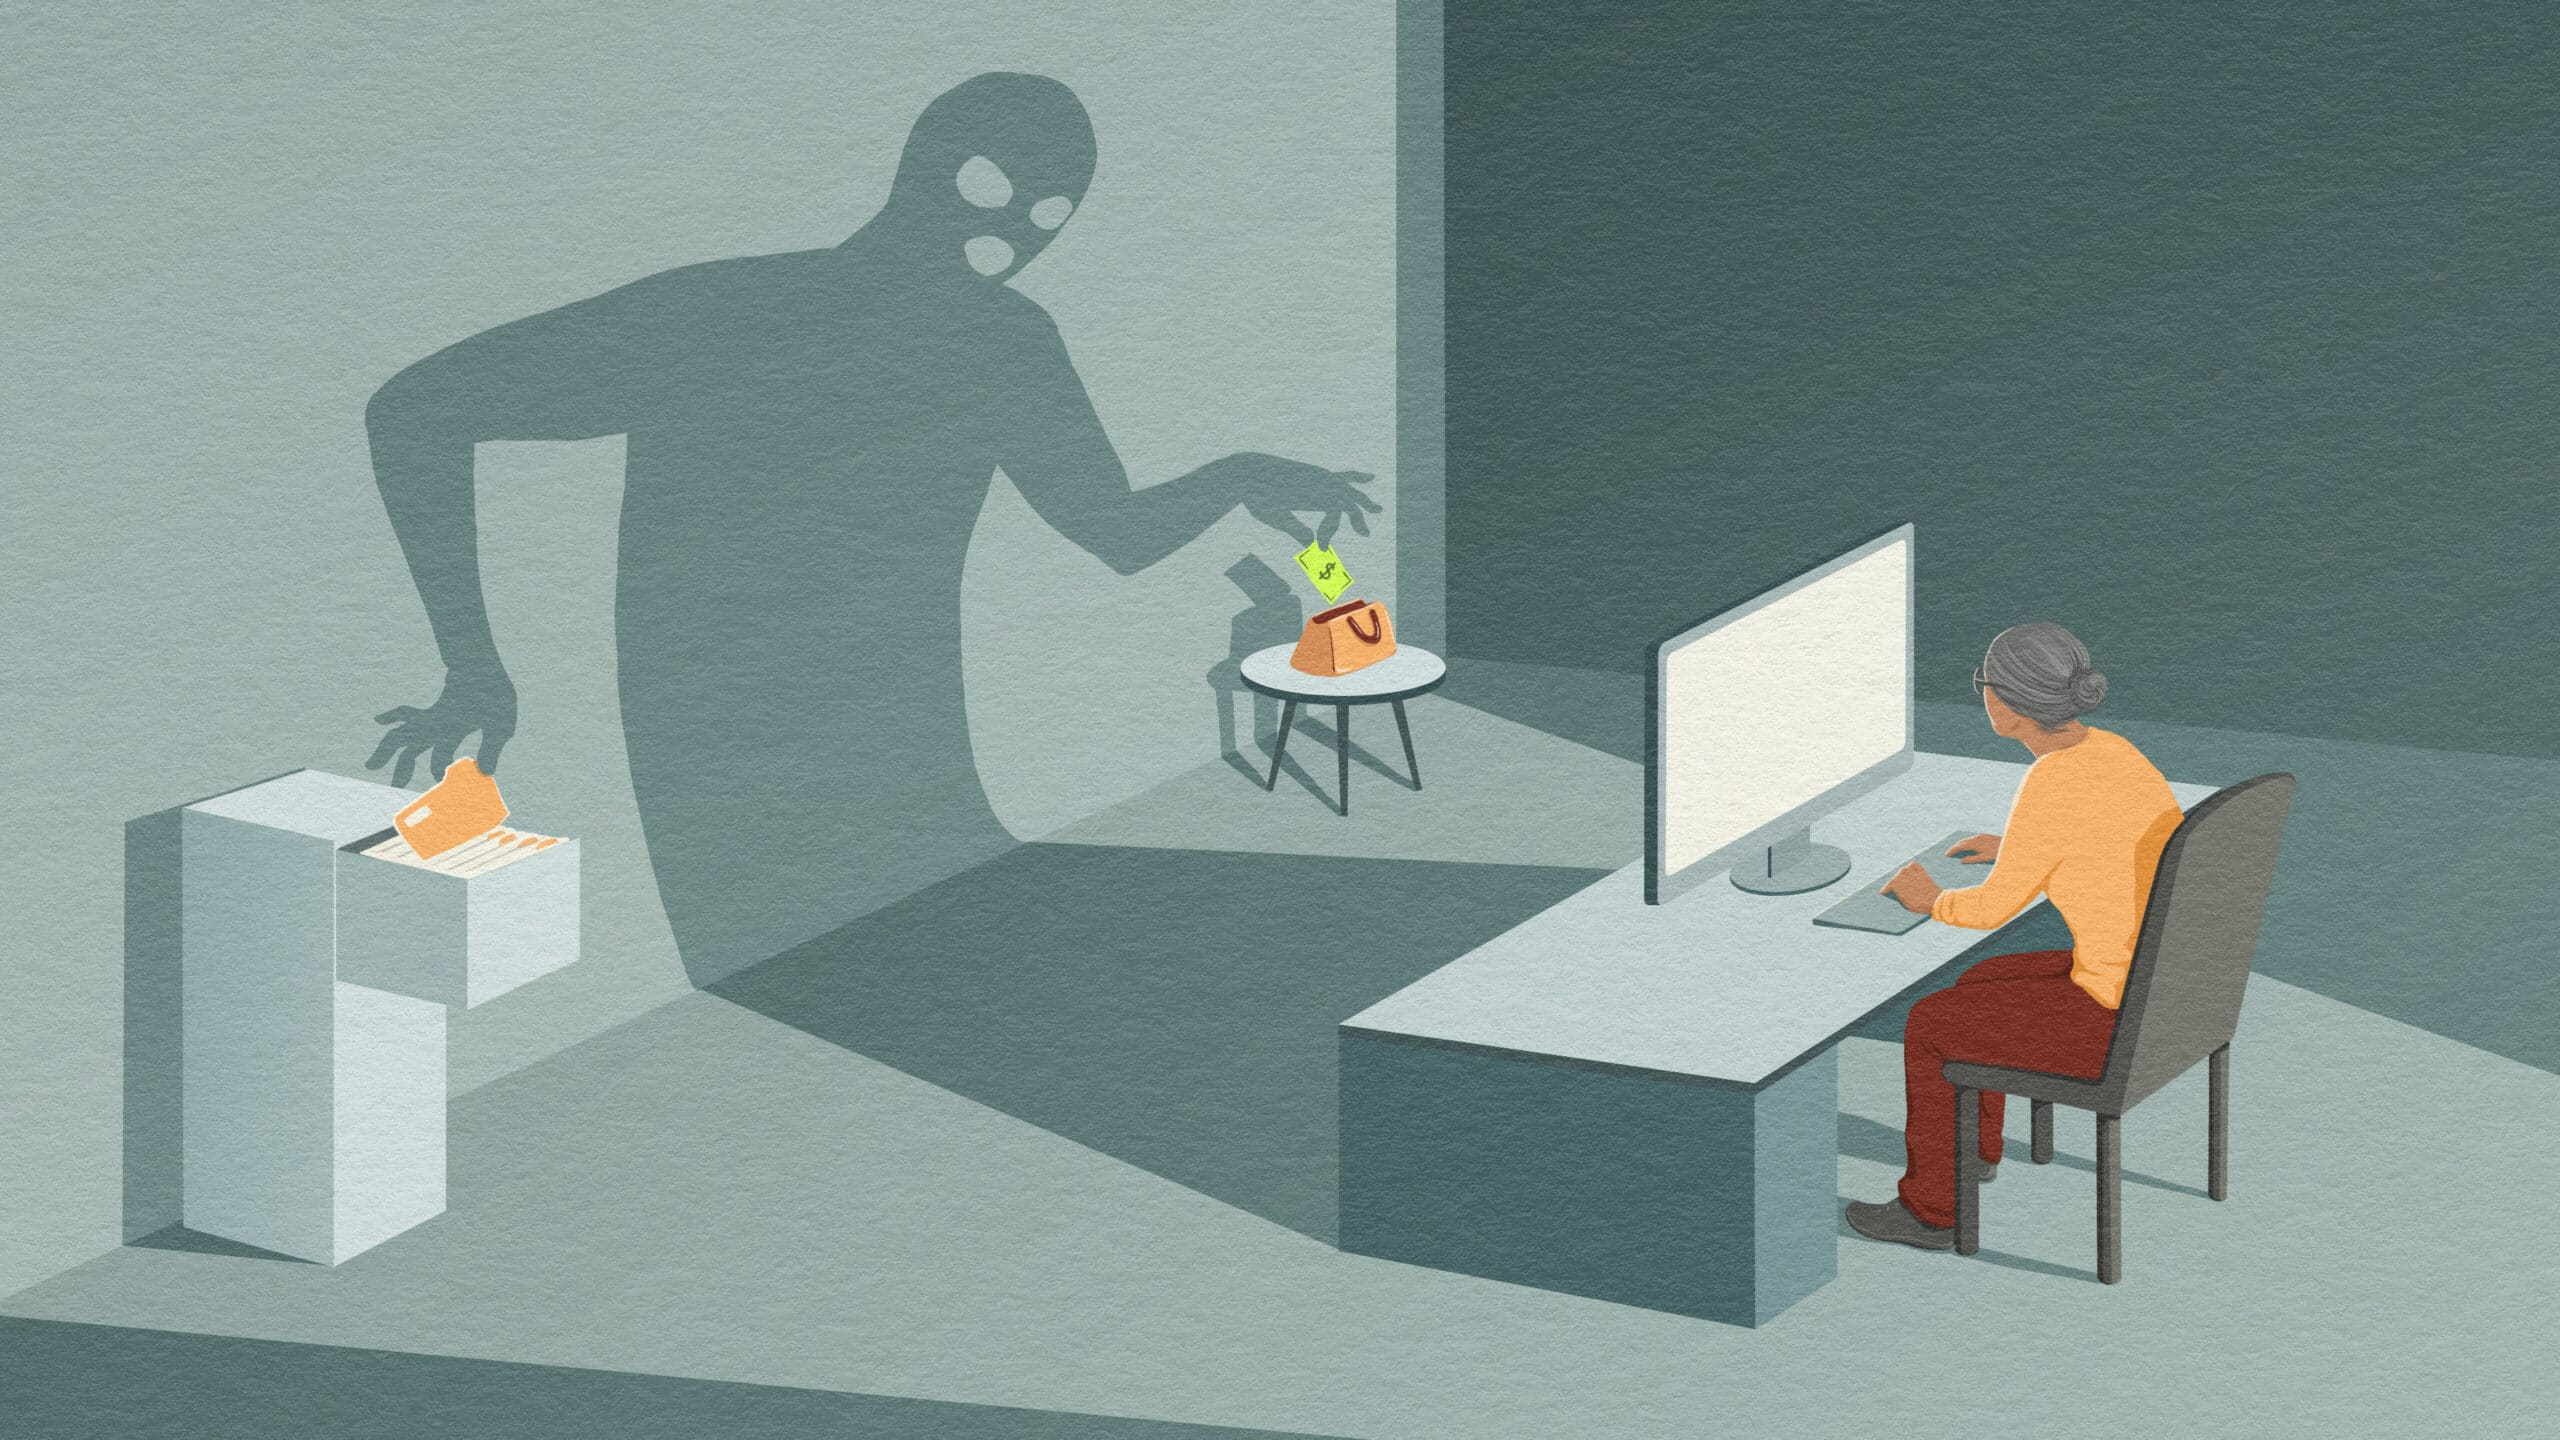 Illustration of senior woman working at her computer. The shadow cast from the computer is in the shape of a masked person, stealing money from her purse and information from her file cabinet.